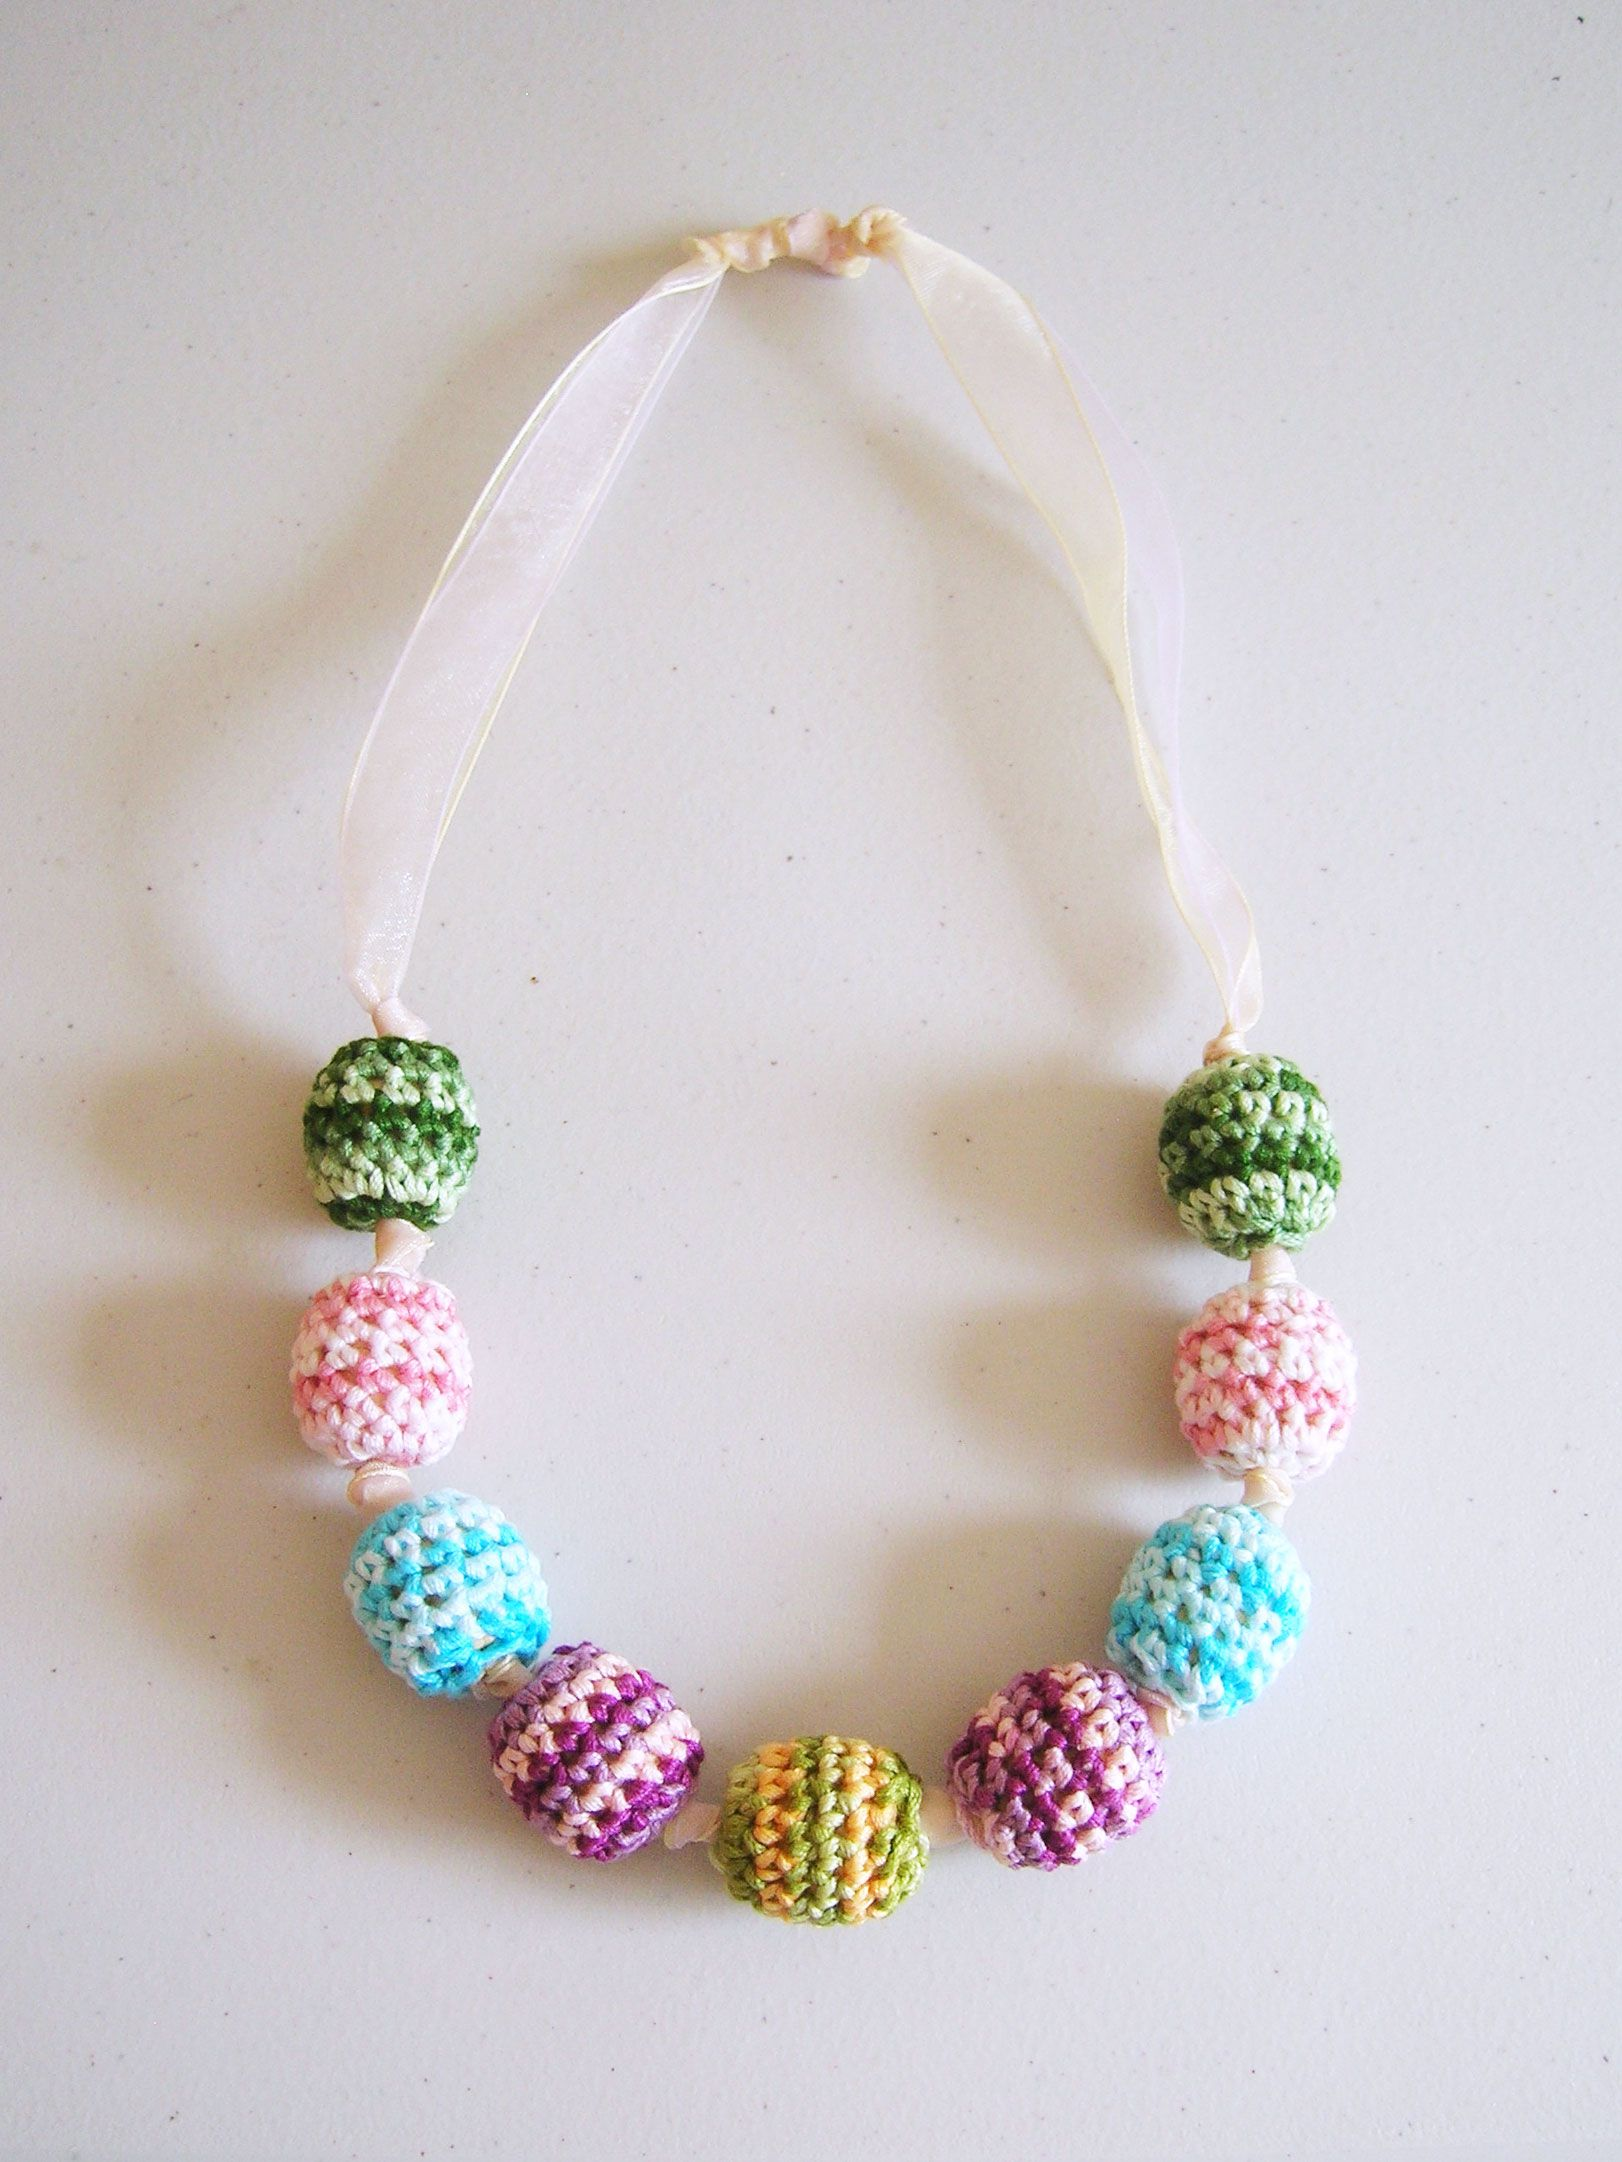 Pretty and very girly crochet beads necklace collar de cuentas crochet beads necklace by chabegs free crochet pattern chabepatterns bankloansurffo Image collections